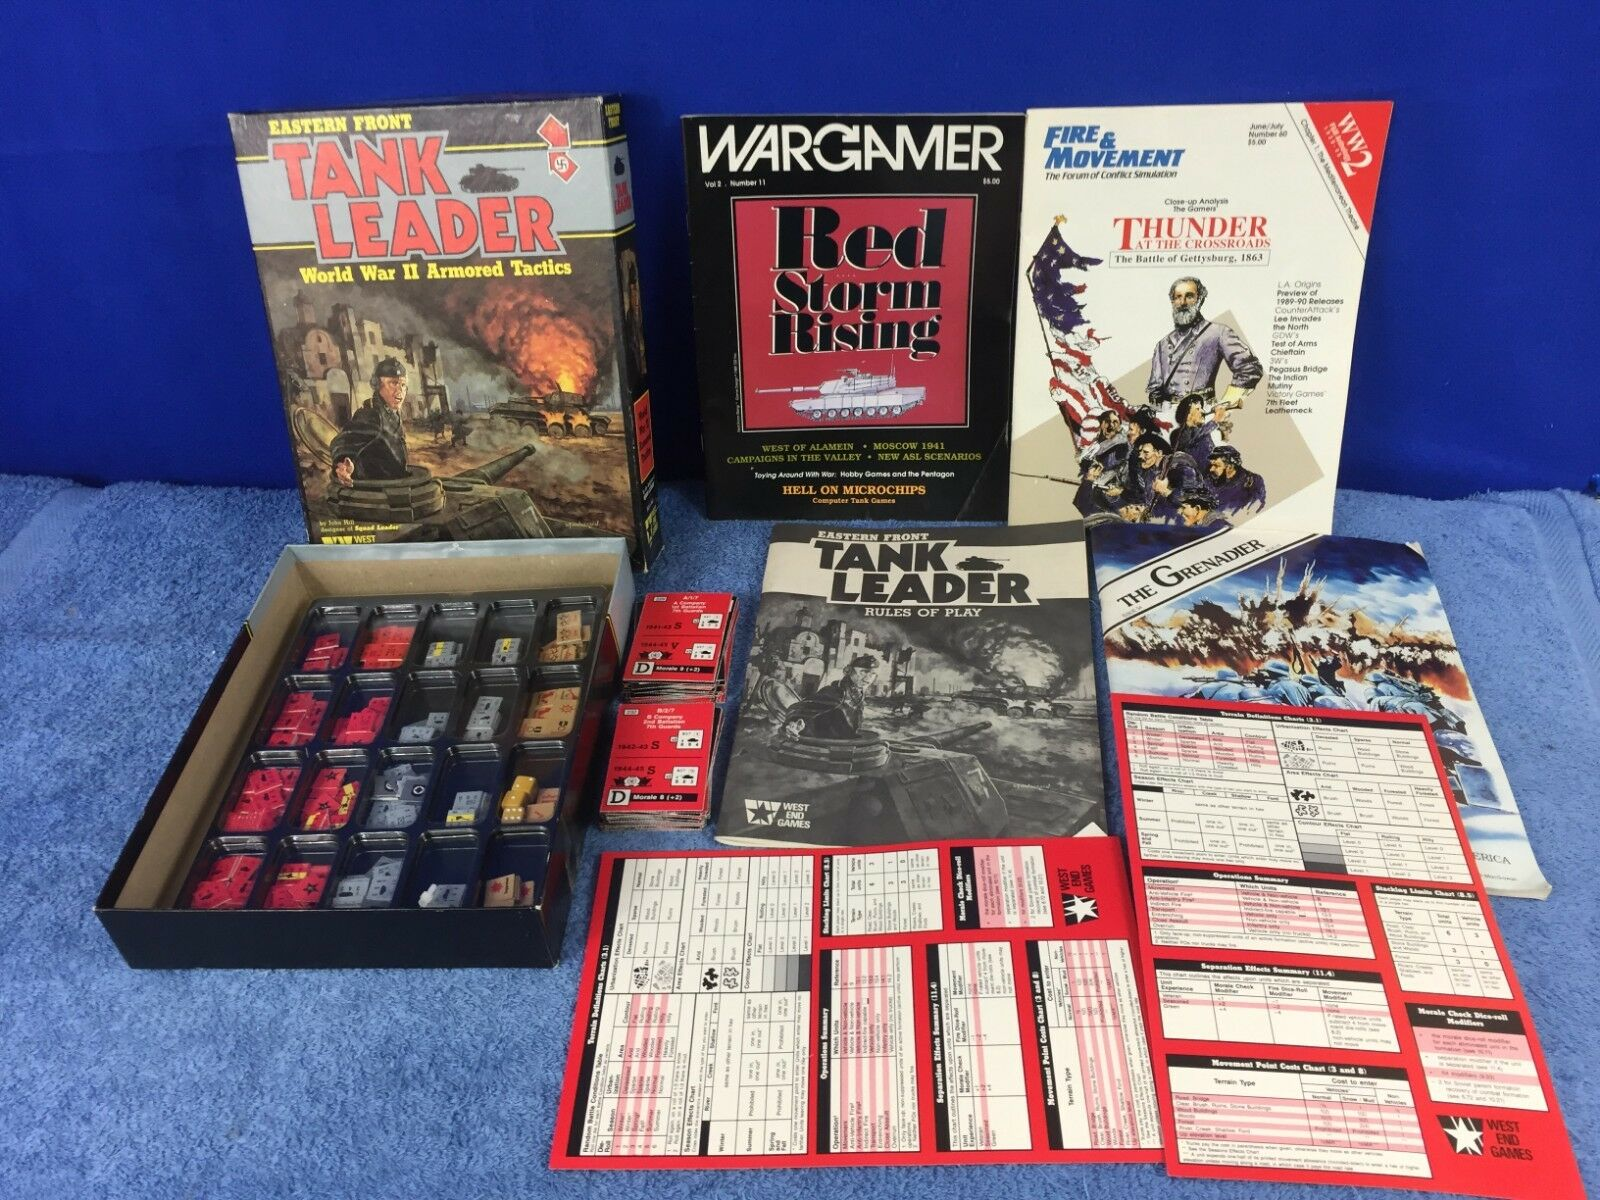 West End Eastern Front Tank Leader WWII Military Strategy BookCase Board Game